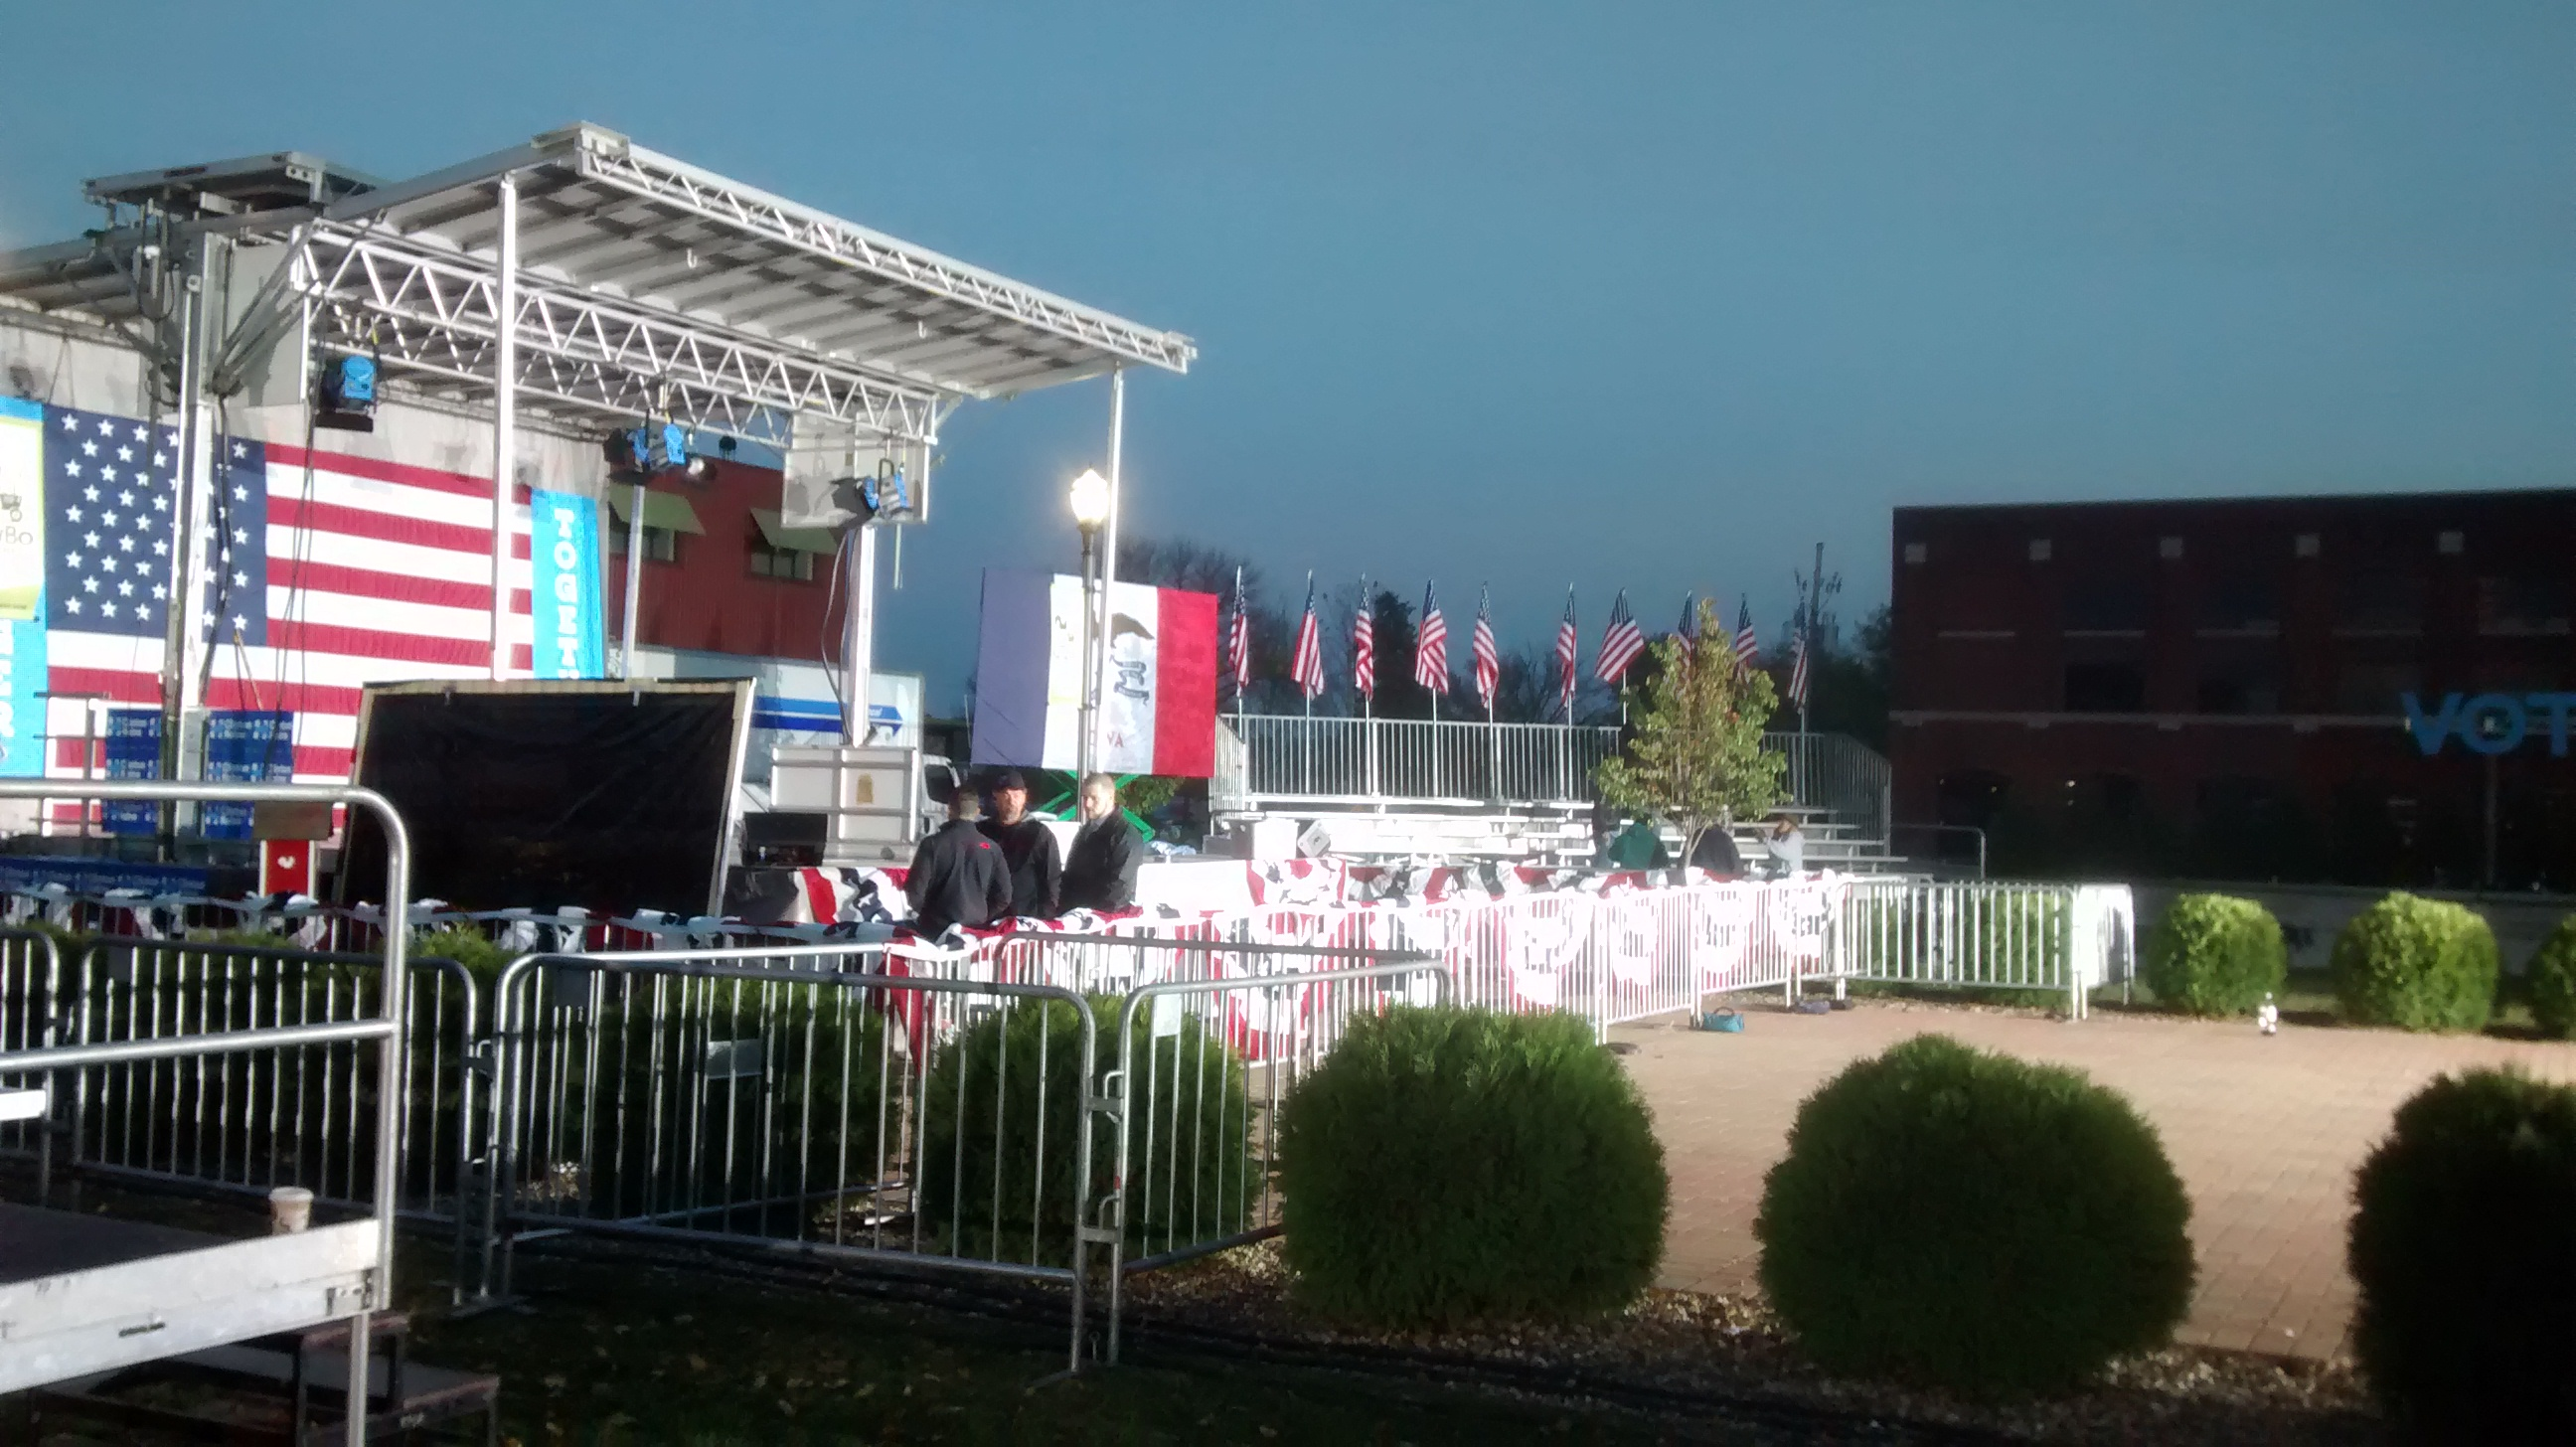 Setup of barricade and more for the Hillary Clinton political rally at NewBo City Market in Cedar Rapids, Iowa